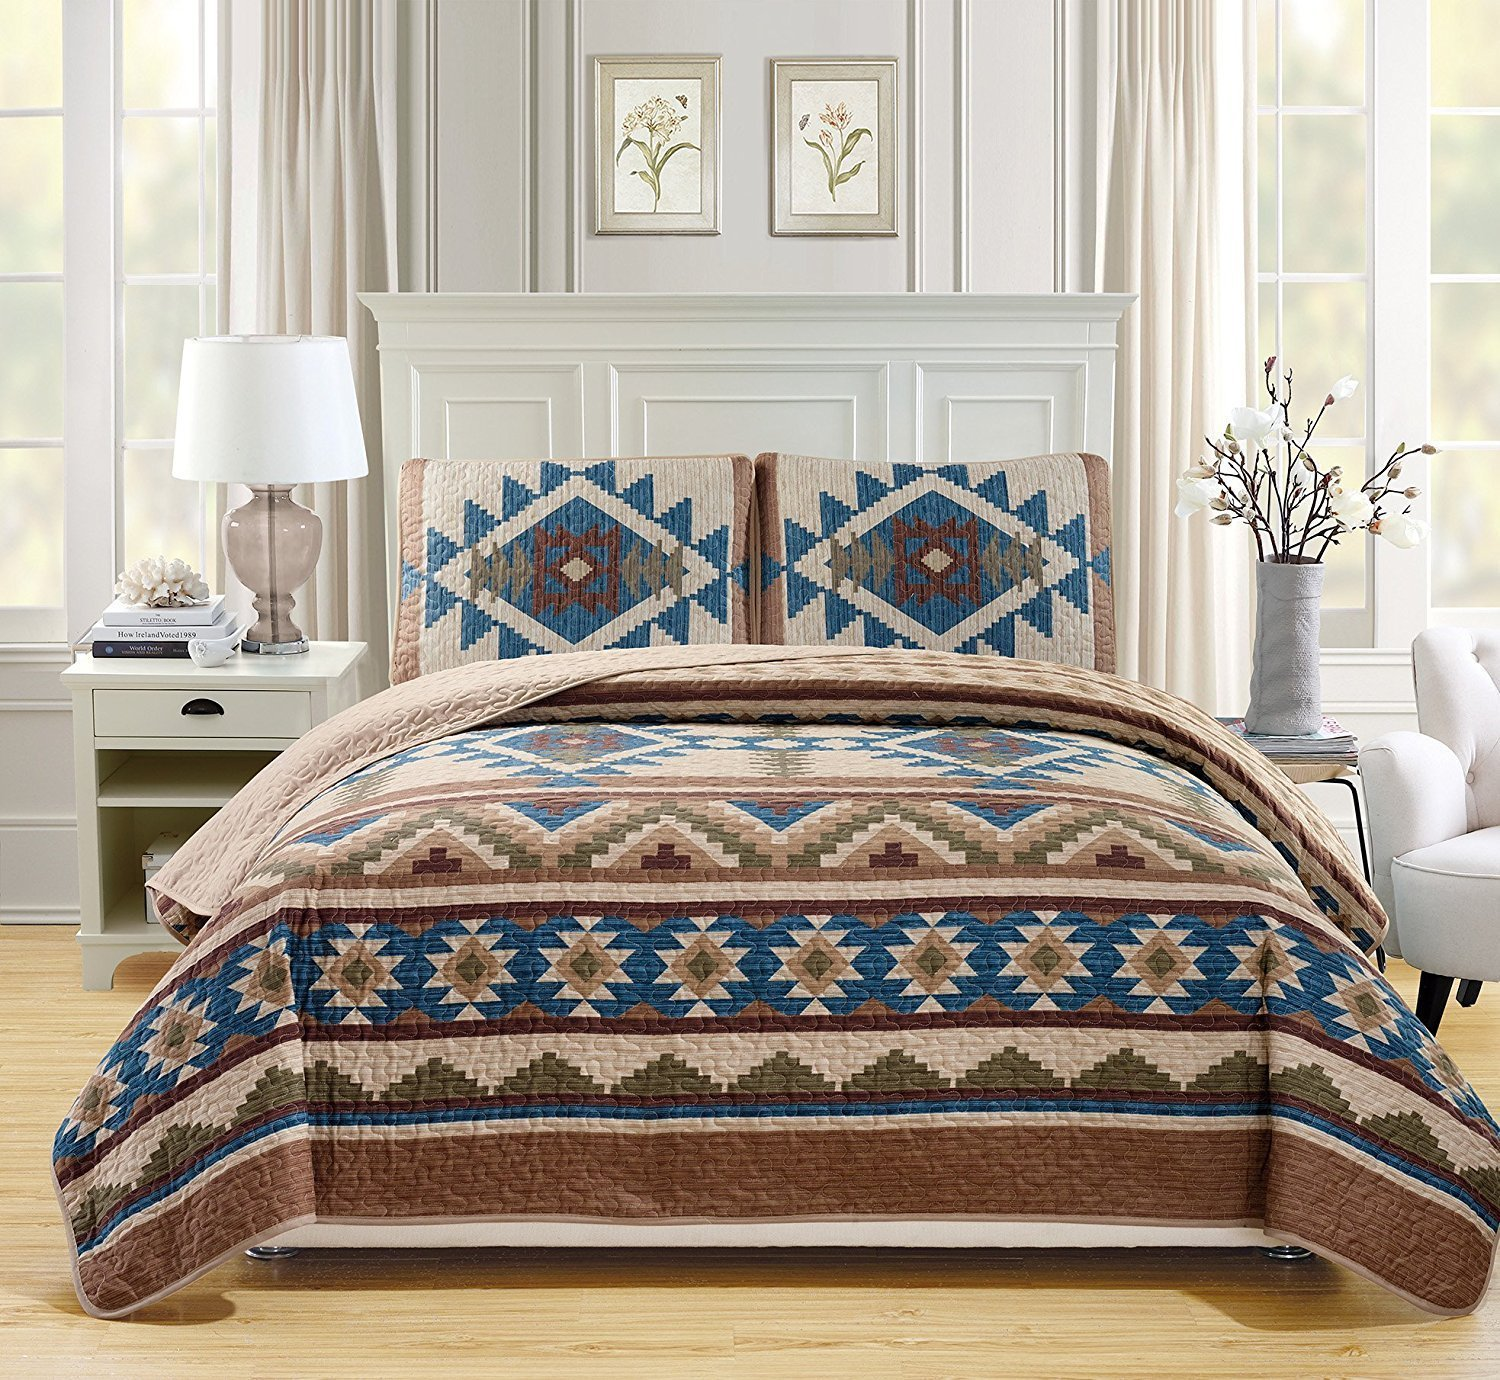 Southwestern Bedding Set 3 Pc Quilt Full Queen Oversize